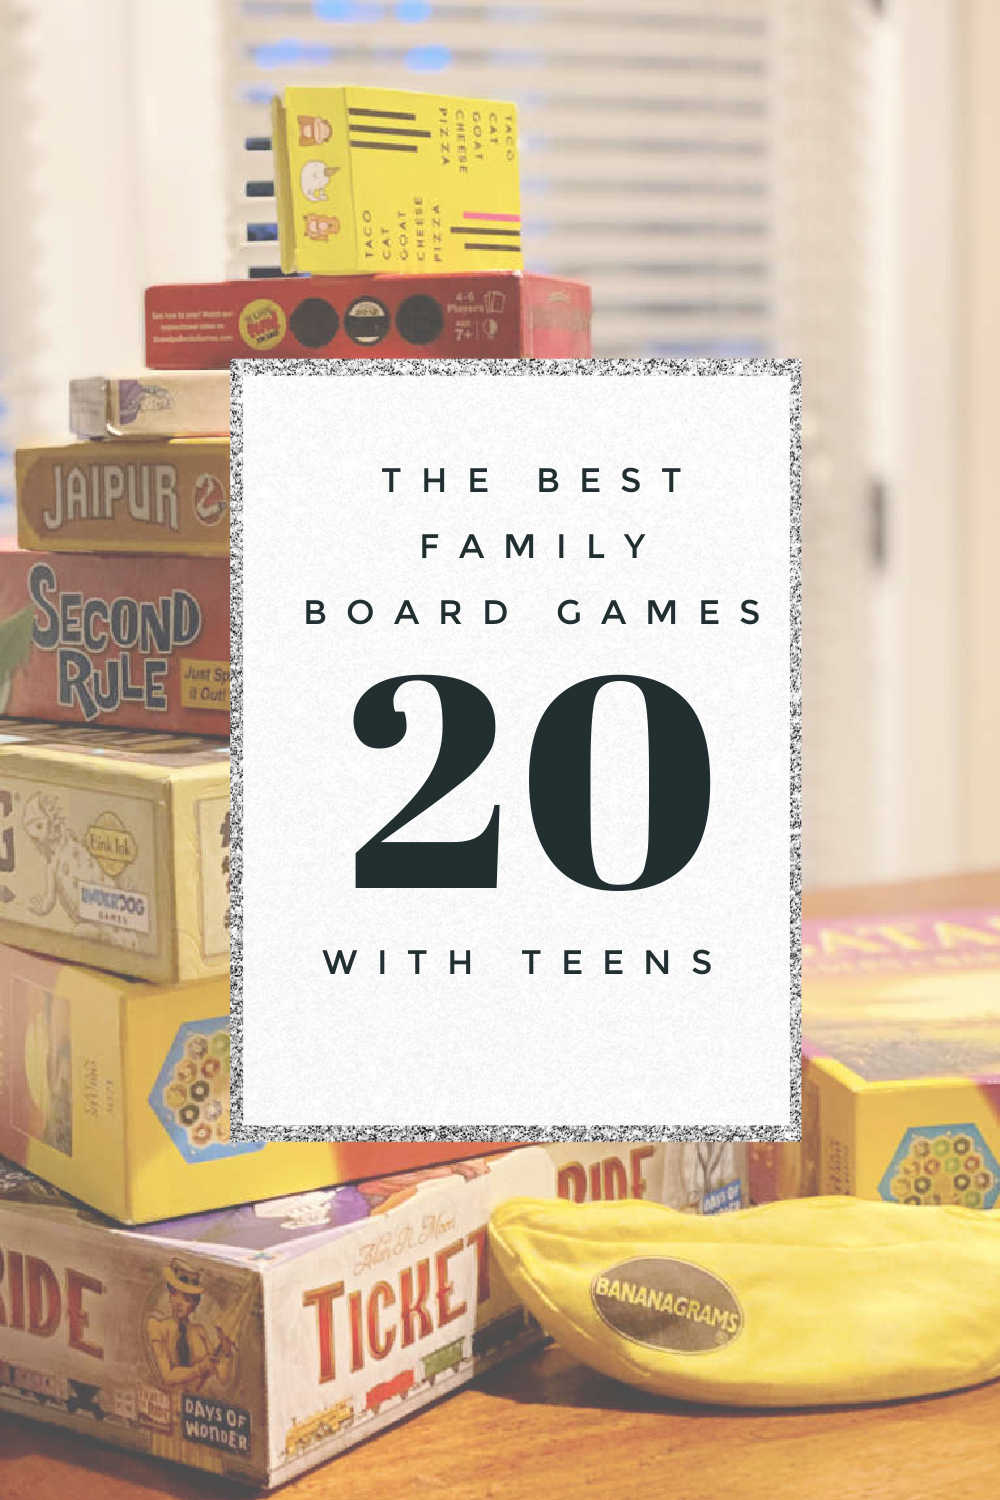 20 OF THE BEST FAMILY BOARD GAMES WITH TTEENS